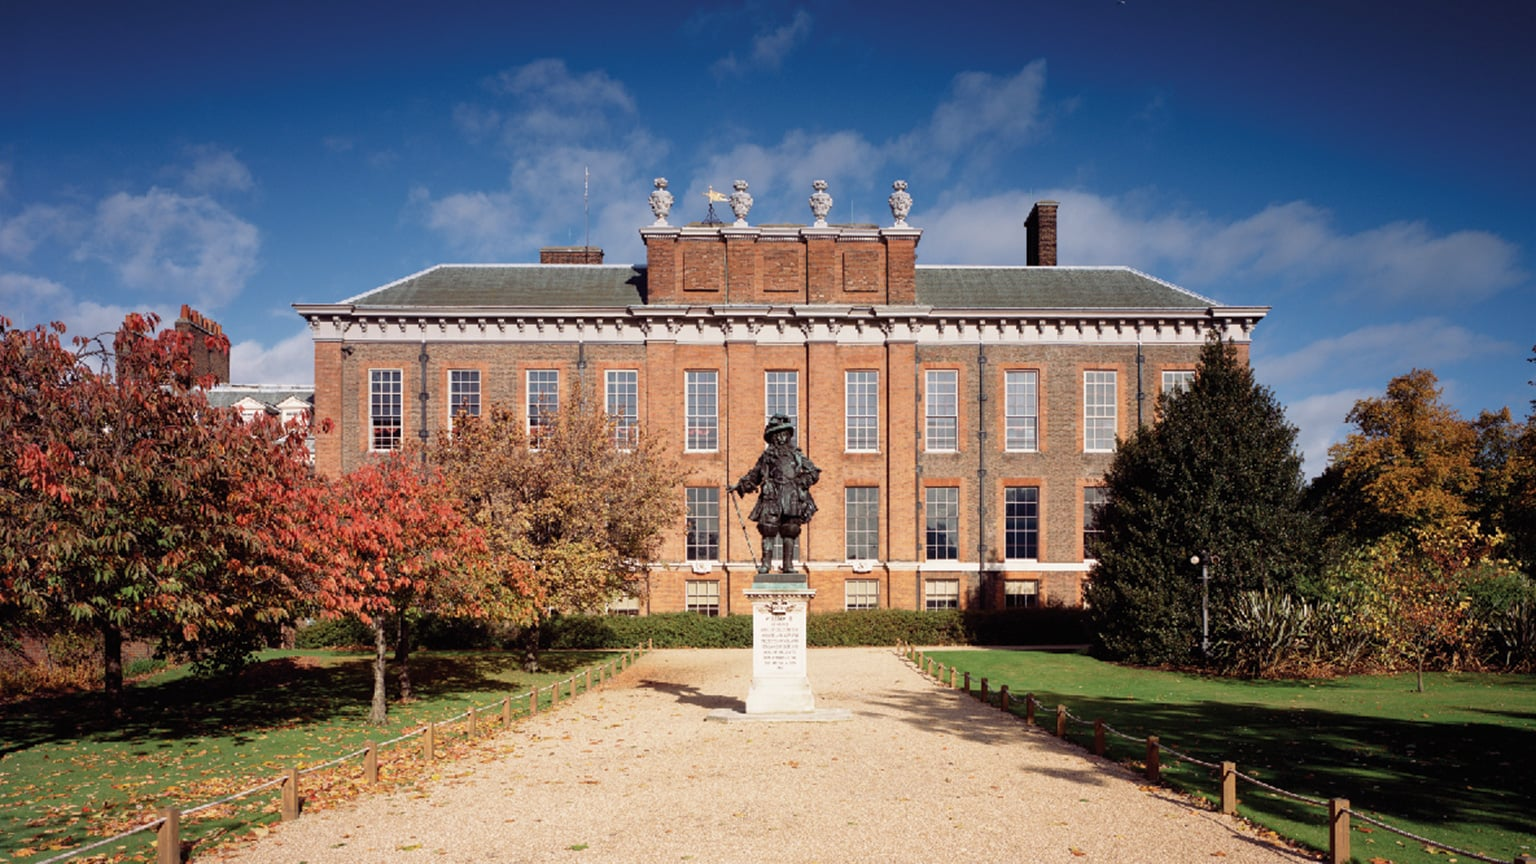 5. Kensington Palace in London - Free entry with National Art Pass